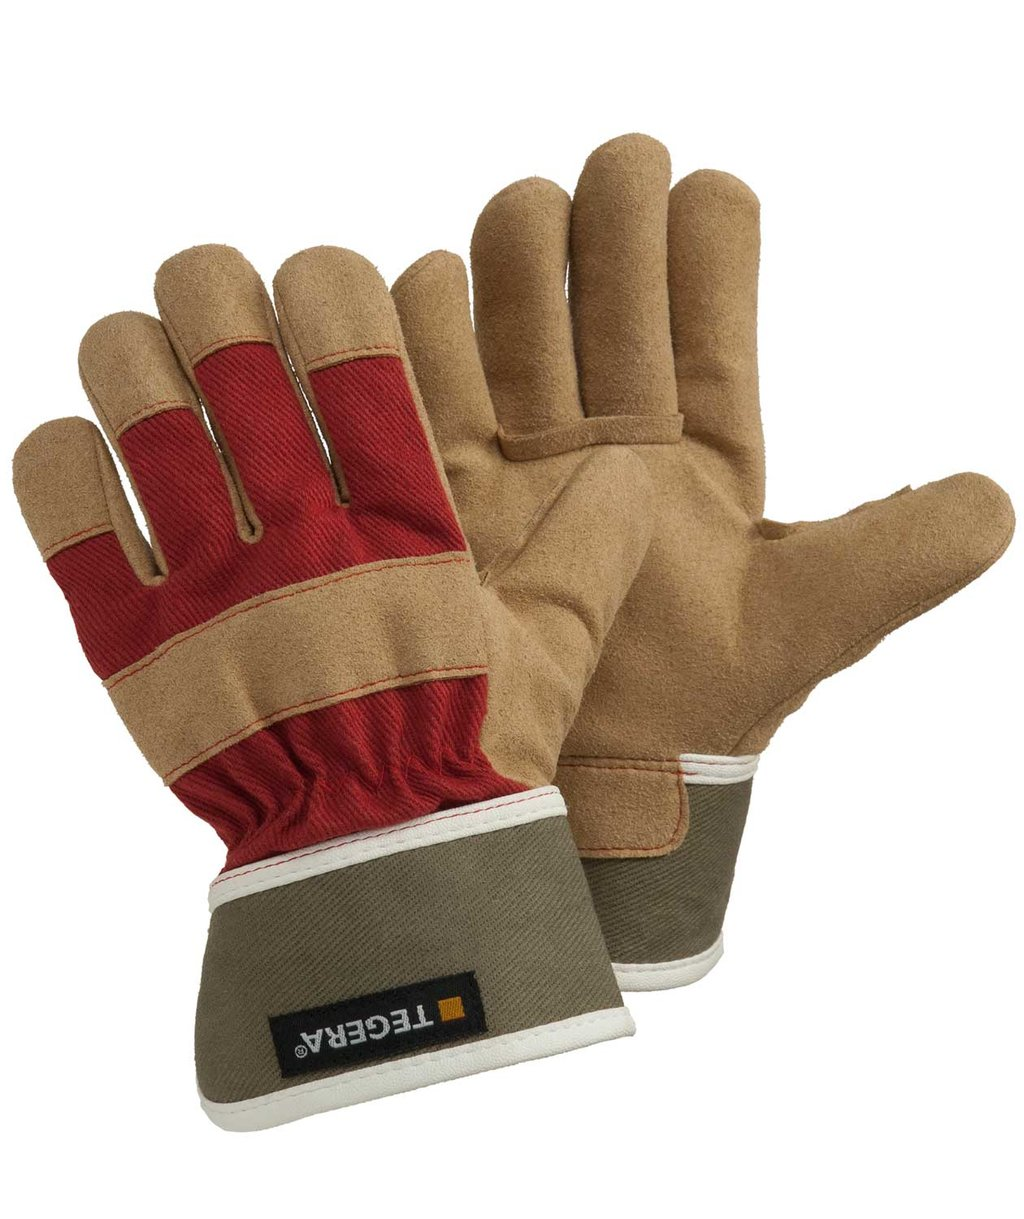 Tegera 90088 work gloves for kids, Brown/Red/Green